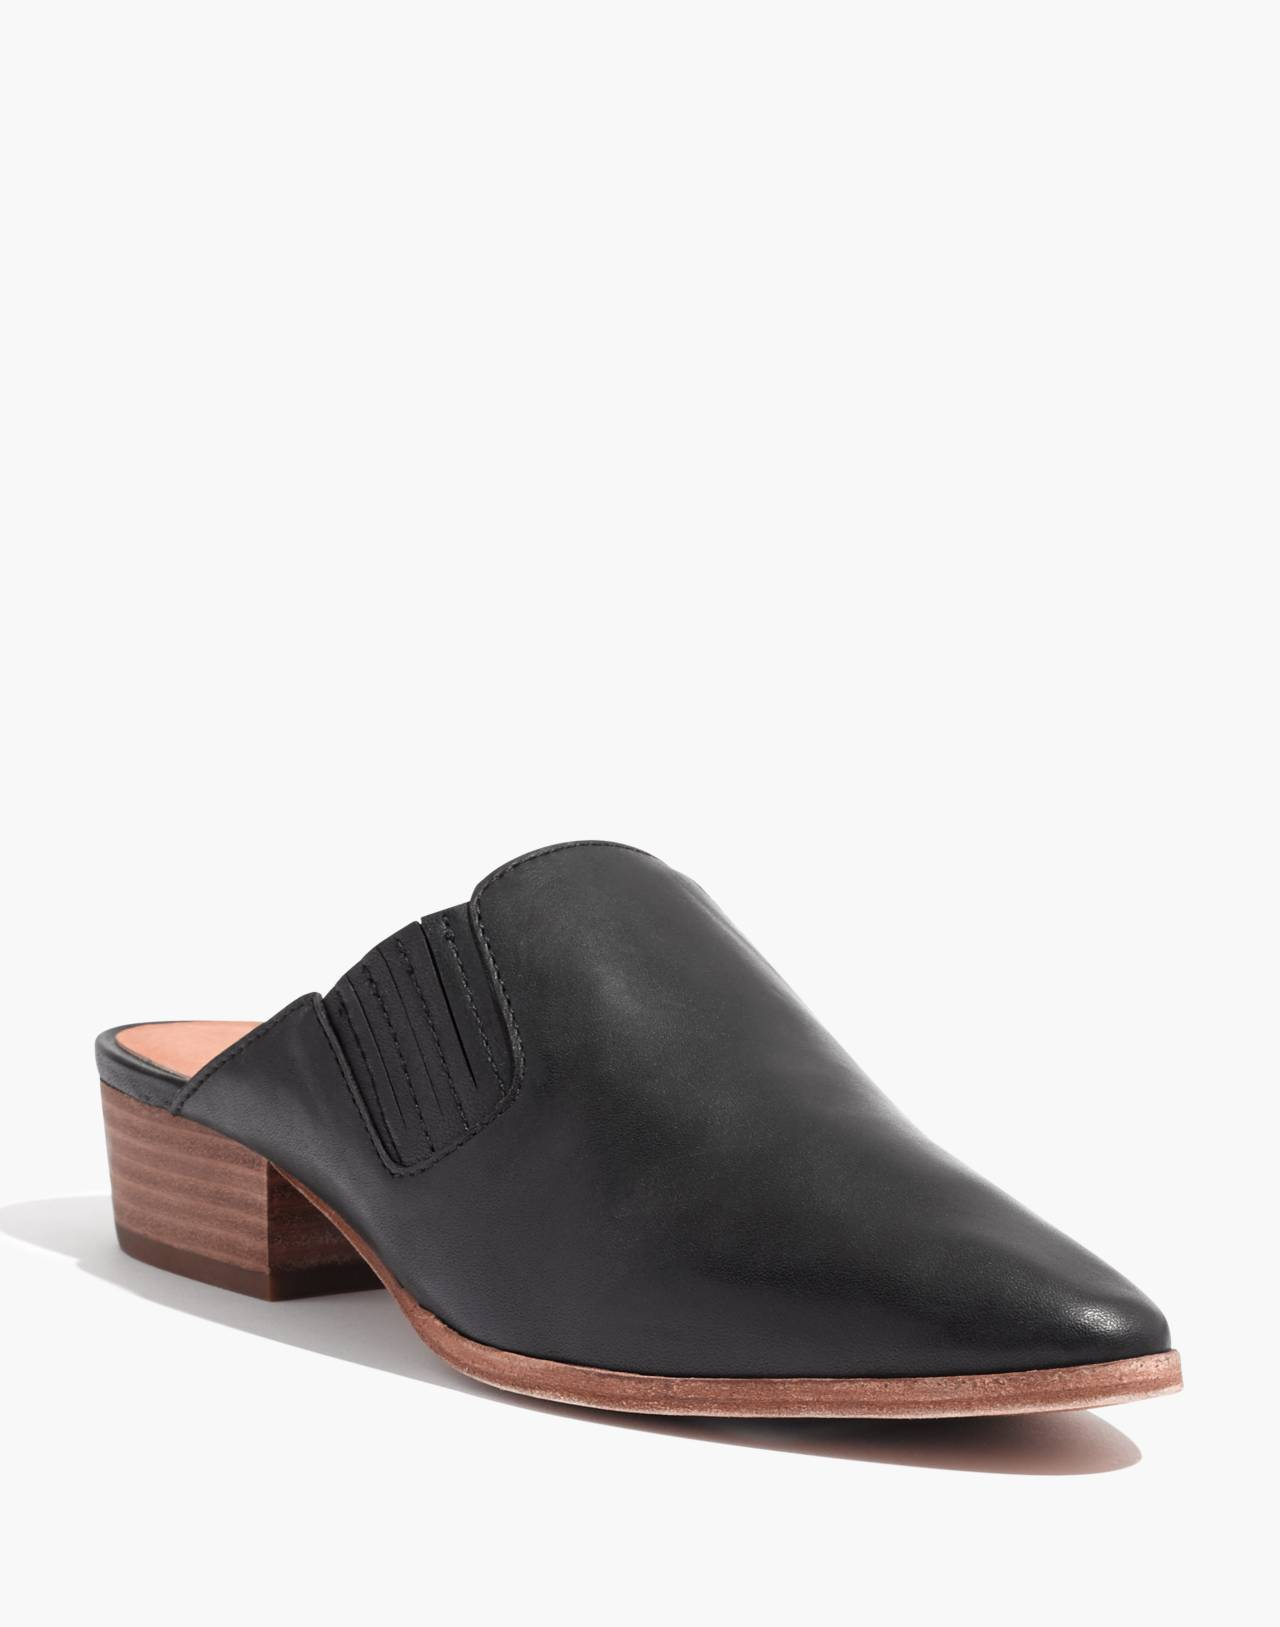 The Lanna Mule in true black image 2